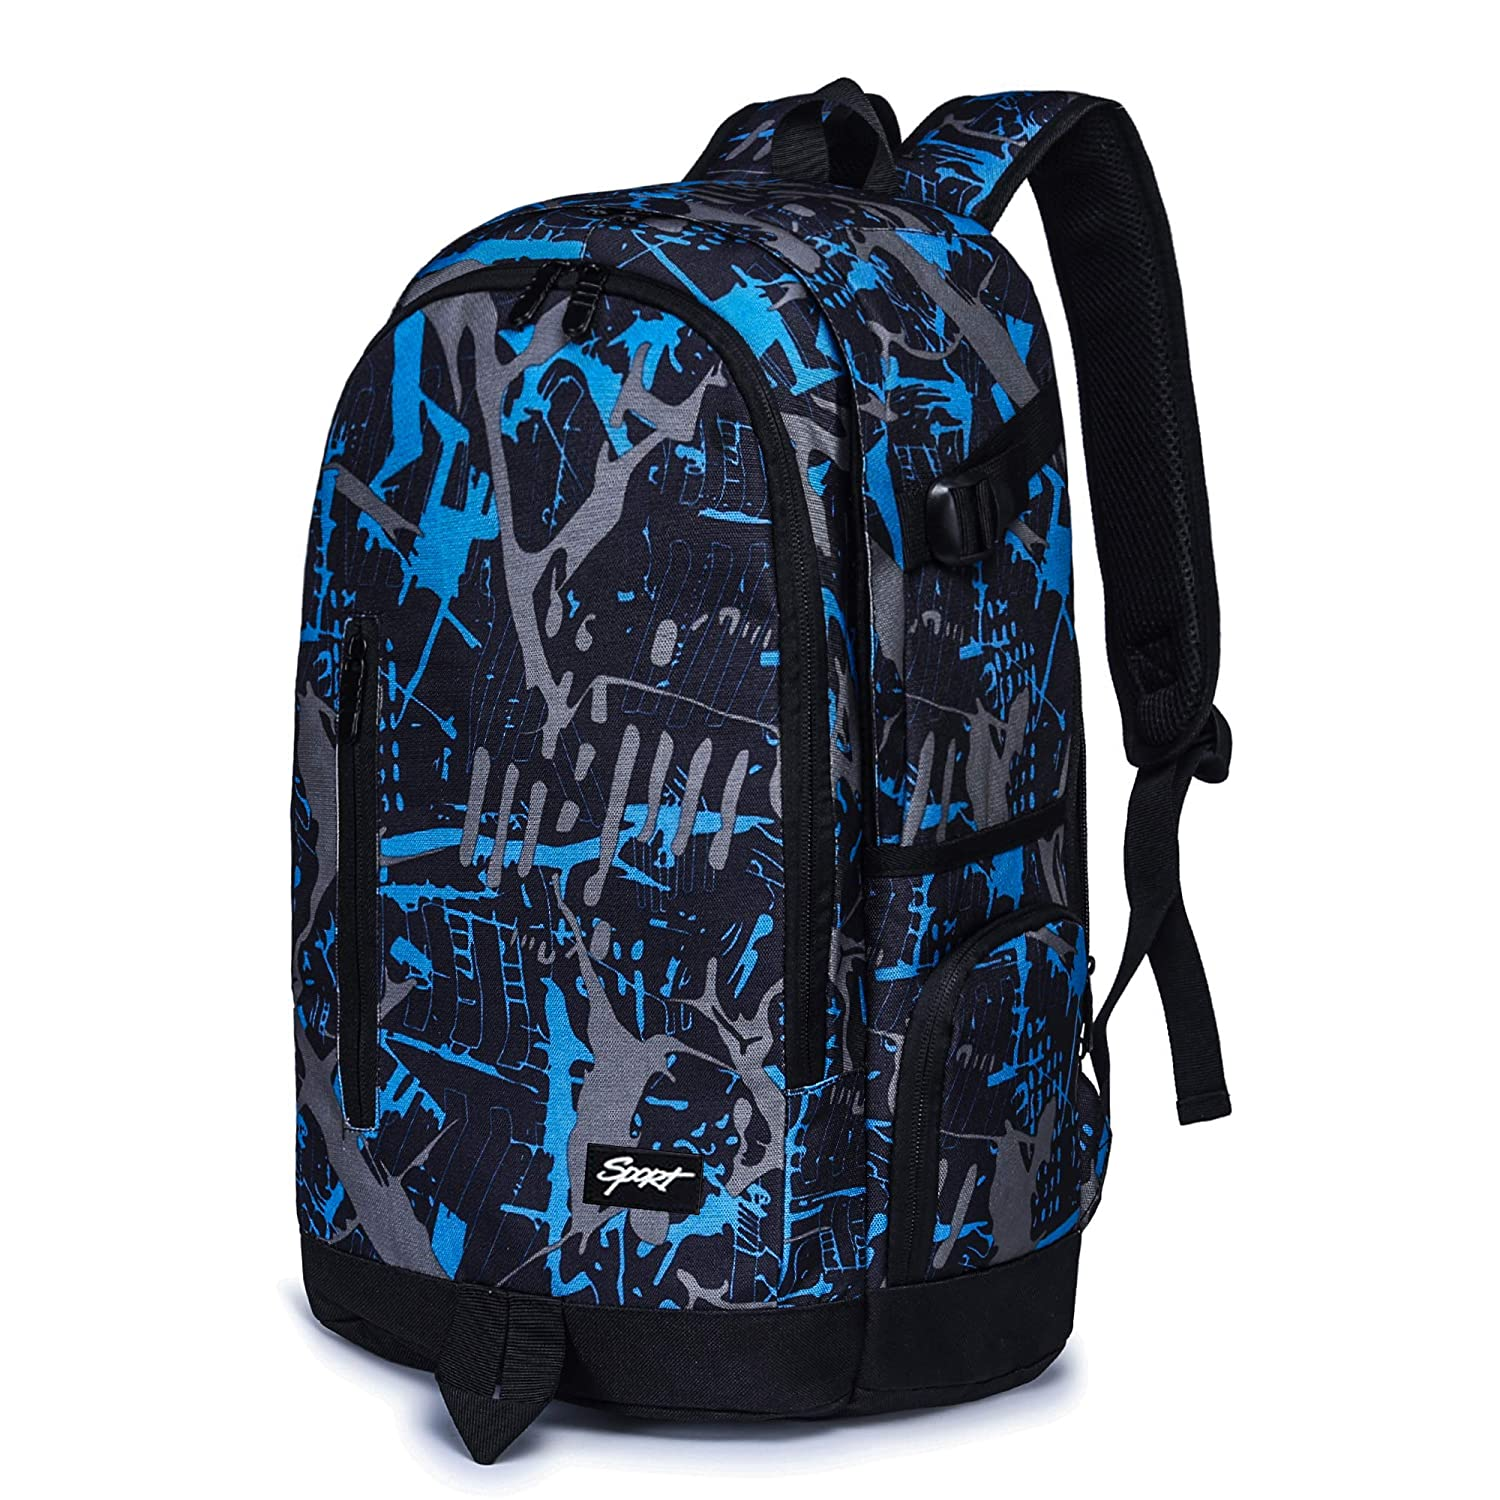 School Backpack, Ricky-H Lifestyle Travel Bag for Men & Women, Lightweight College Back Pack with Laptop Compartment